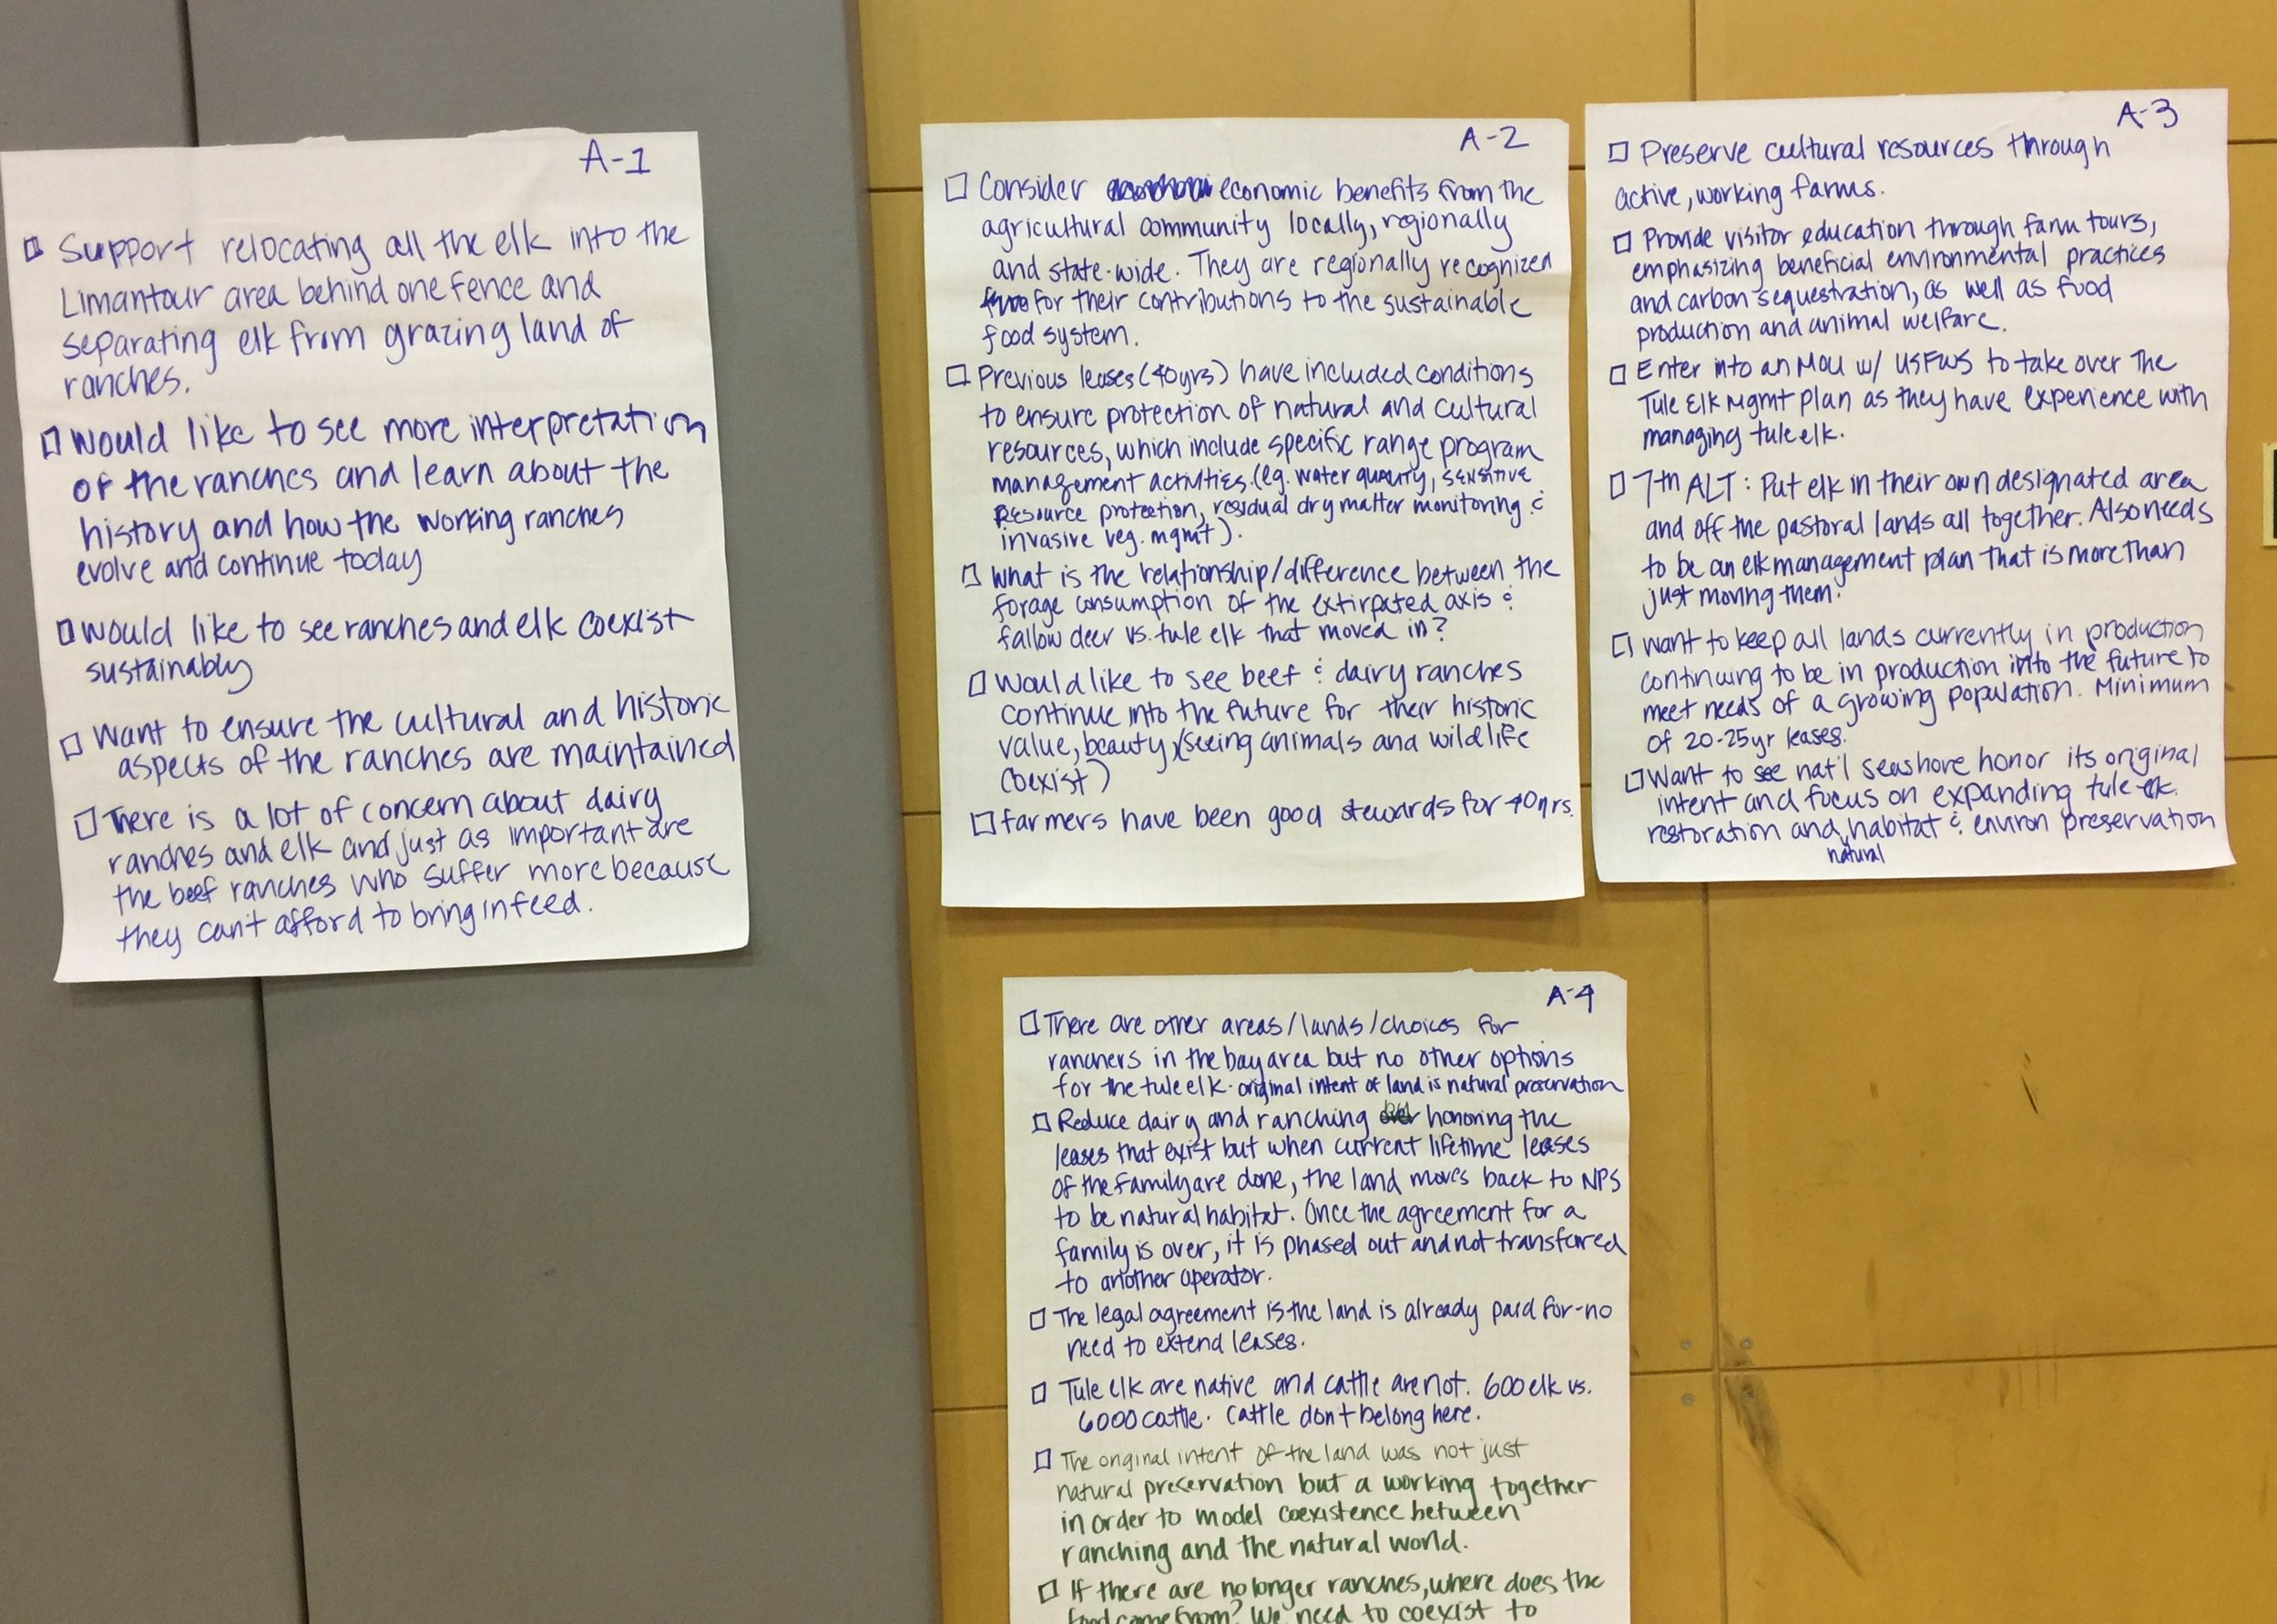 Sample of public comments from October 2017 Point Reyes Station workshop.